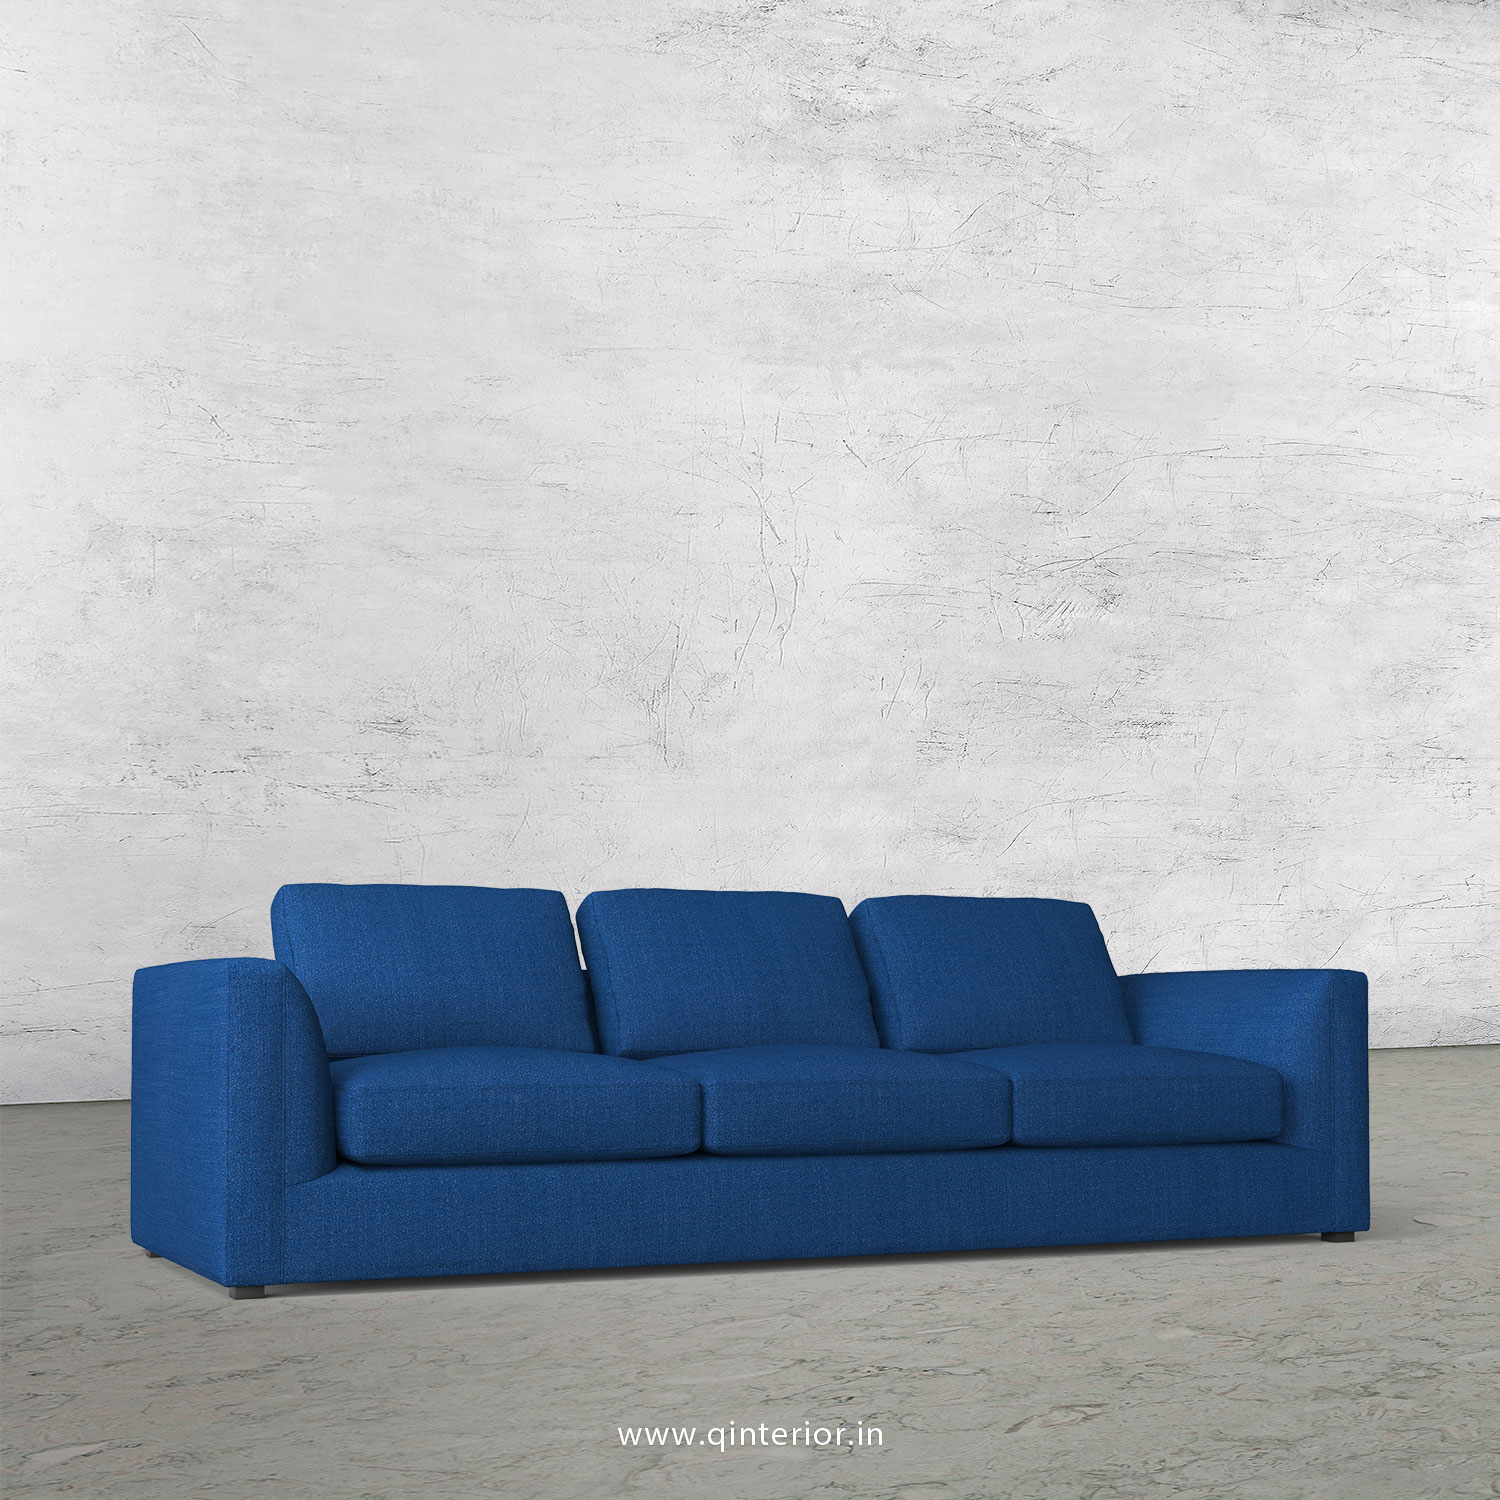 IRVINE 3 Seater Sofa in Bargello Fabric - SFA003 BG07